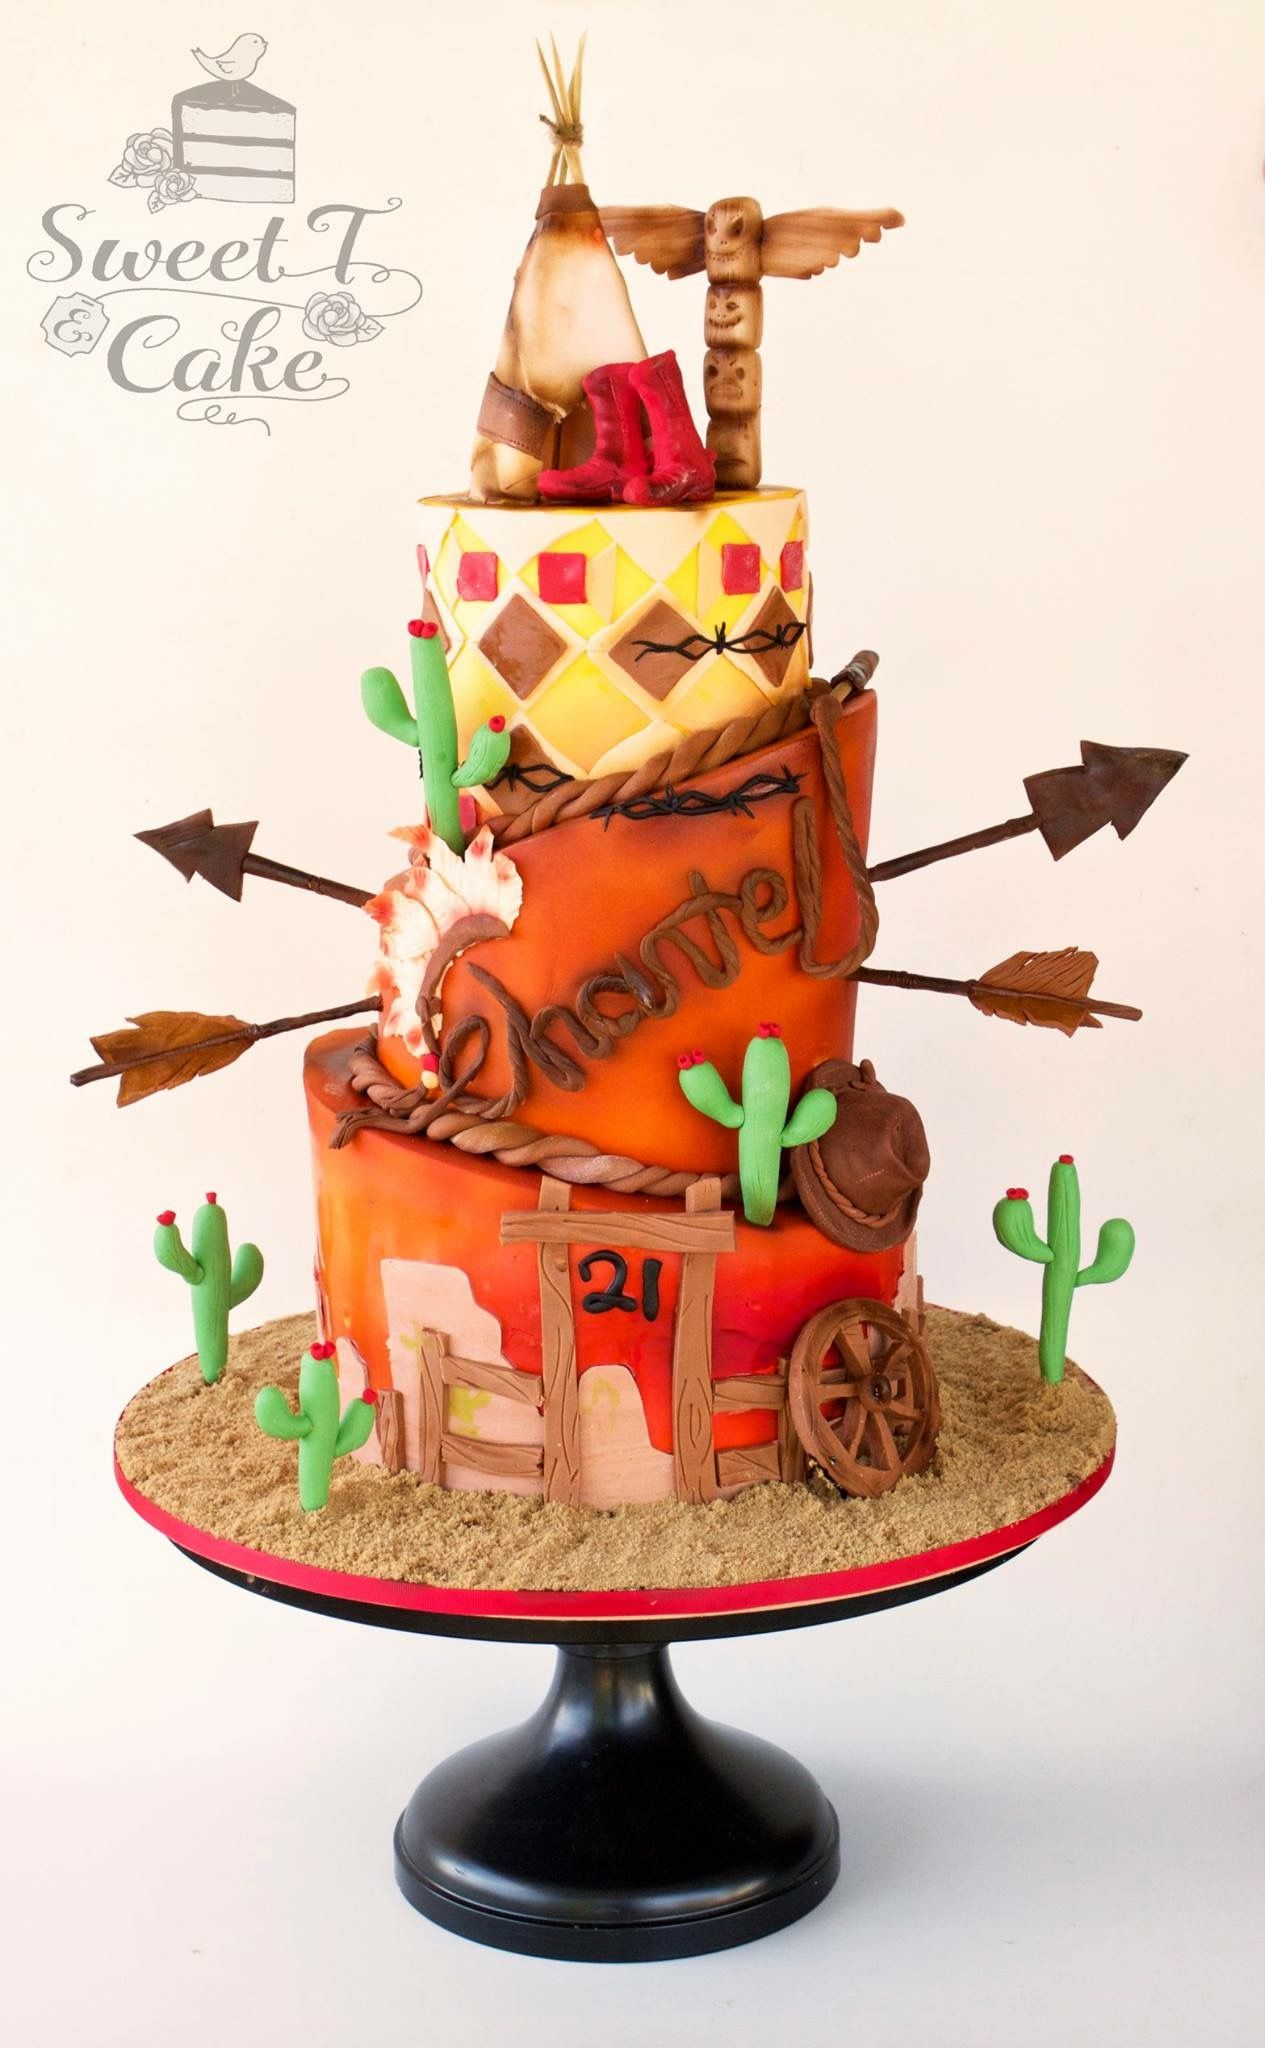 Stupendous Western Theme Cake Cowboys And Indians Western Birthday Cakes Funny Birthday Cards Online Alyptdamsfinfo